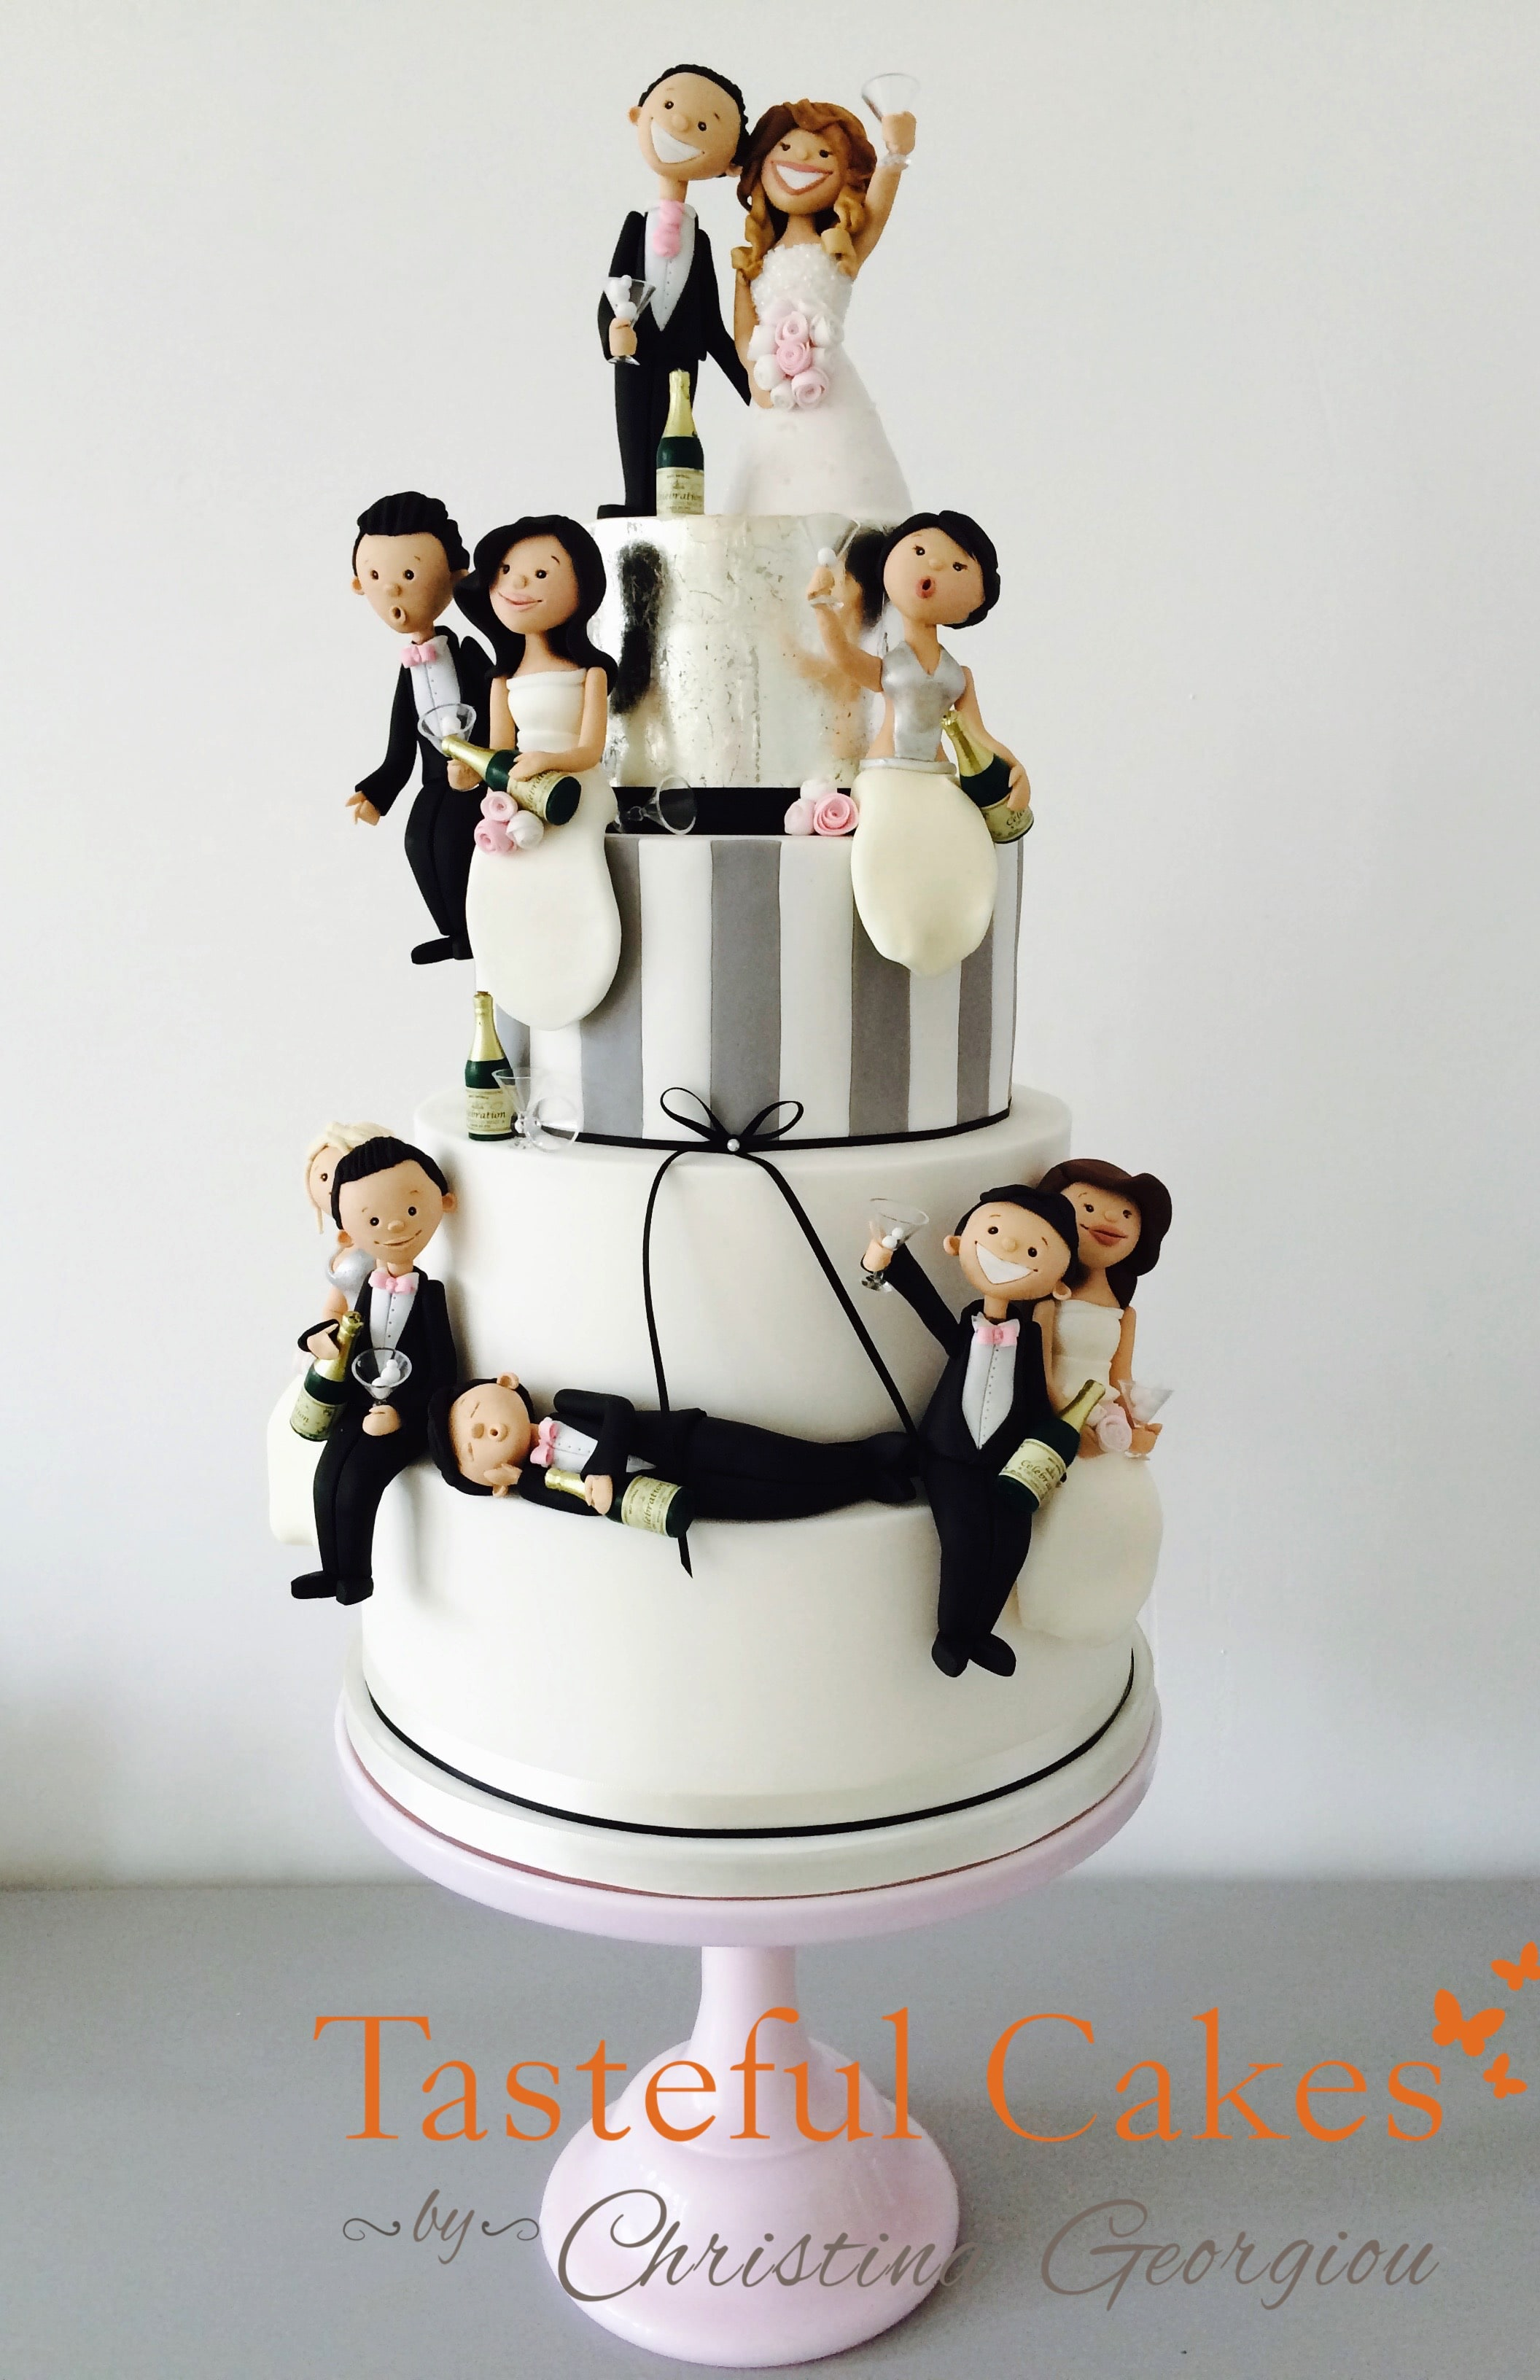 Tasteful Cakes By Christina Georgiou | Funny Drunk Themed Wedding Cake.